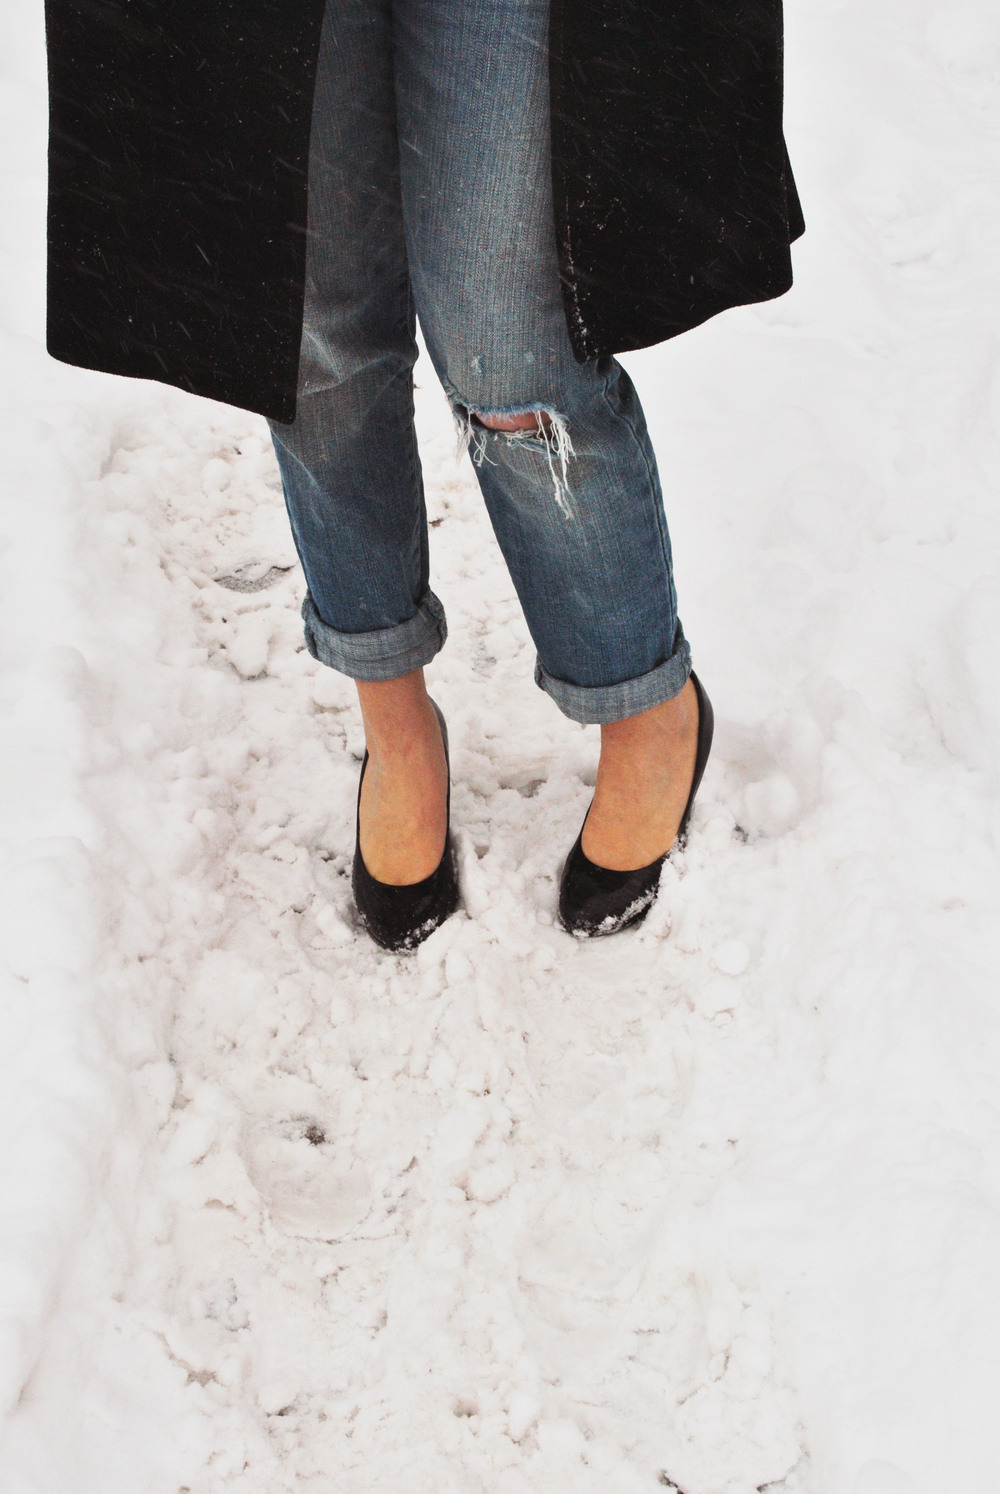 Spots of Black, heels and snow | Thoughtfulwish